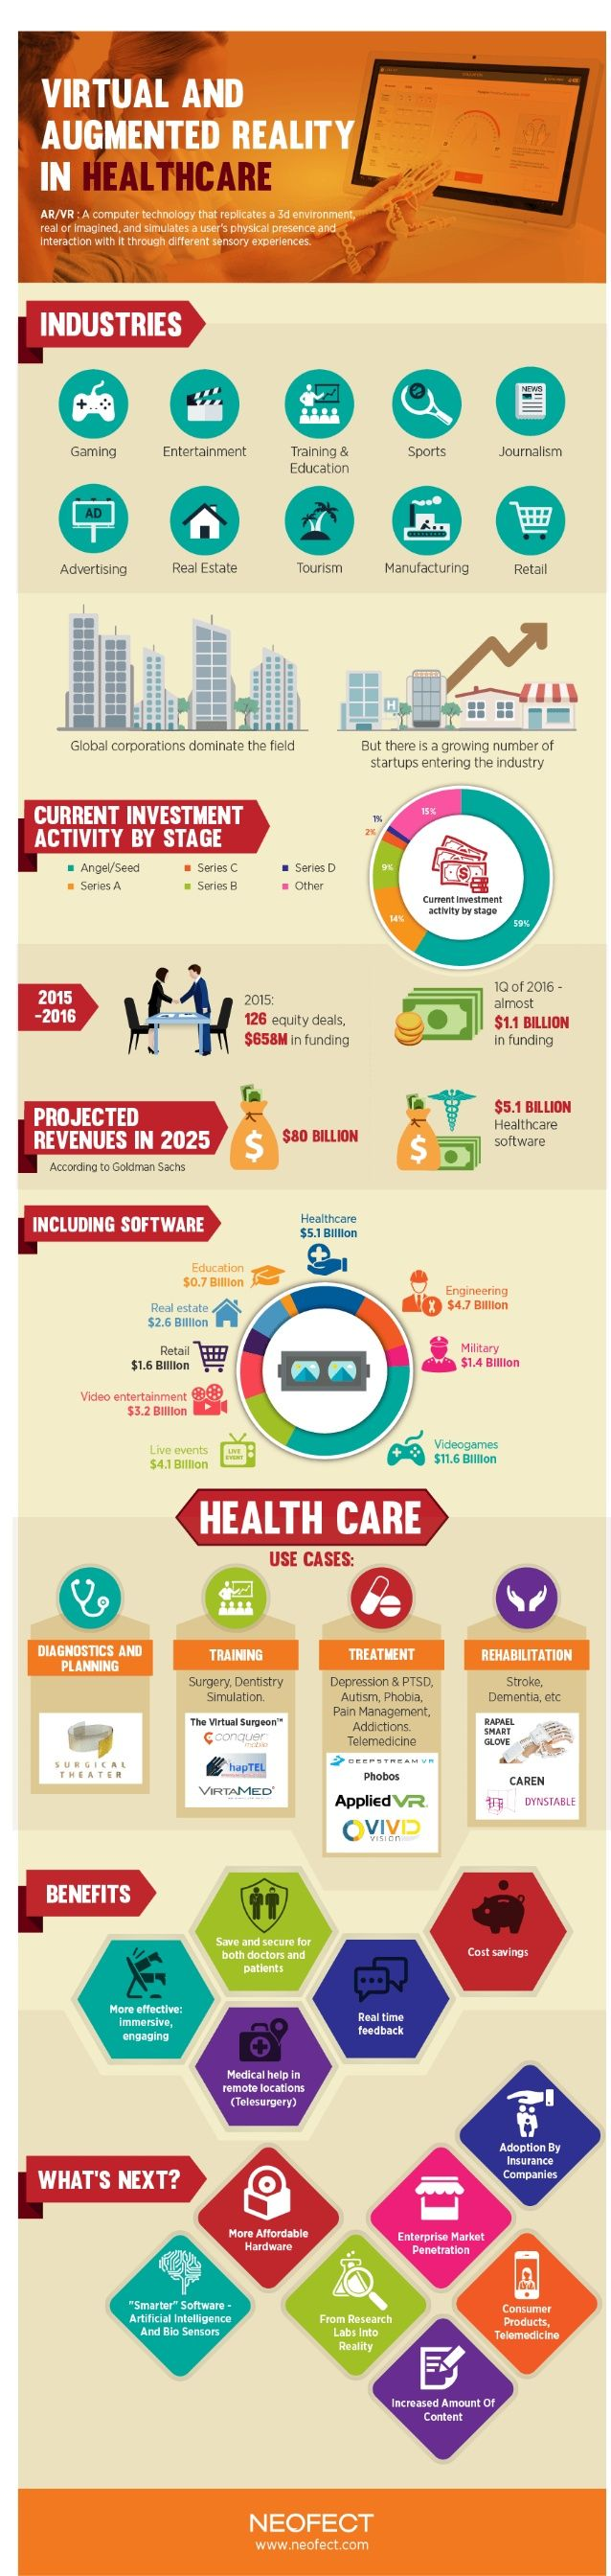 The use of virtual reality (VR) and augmented reality (AR) is growing in the healthcare industry, according to a new infographic by Neofect. Applications can be used for a variety of medical purposes including: diagnostics and planning, training through simulation, rehabilitation, and can also be used as treatment for depression, autism, phobias, pain management, and addiction.